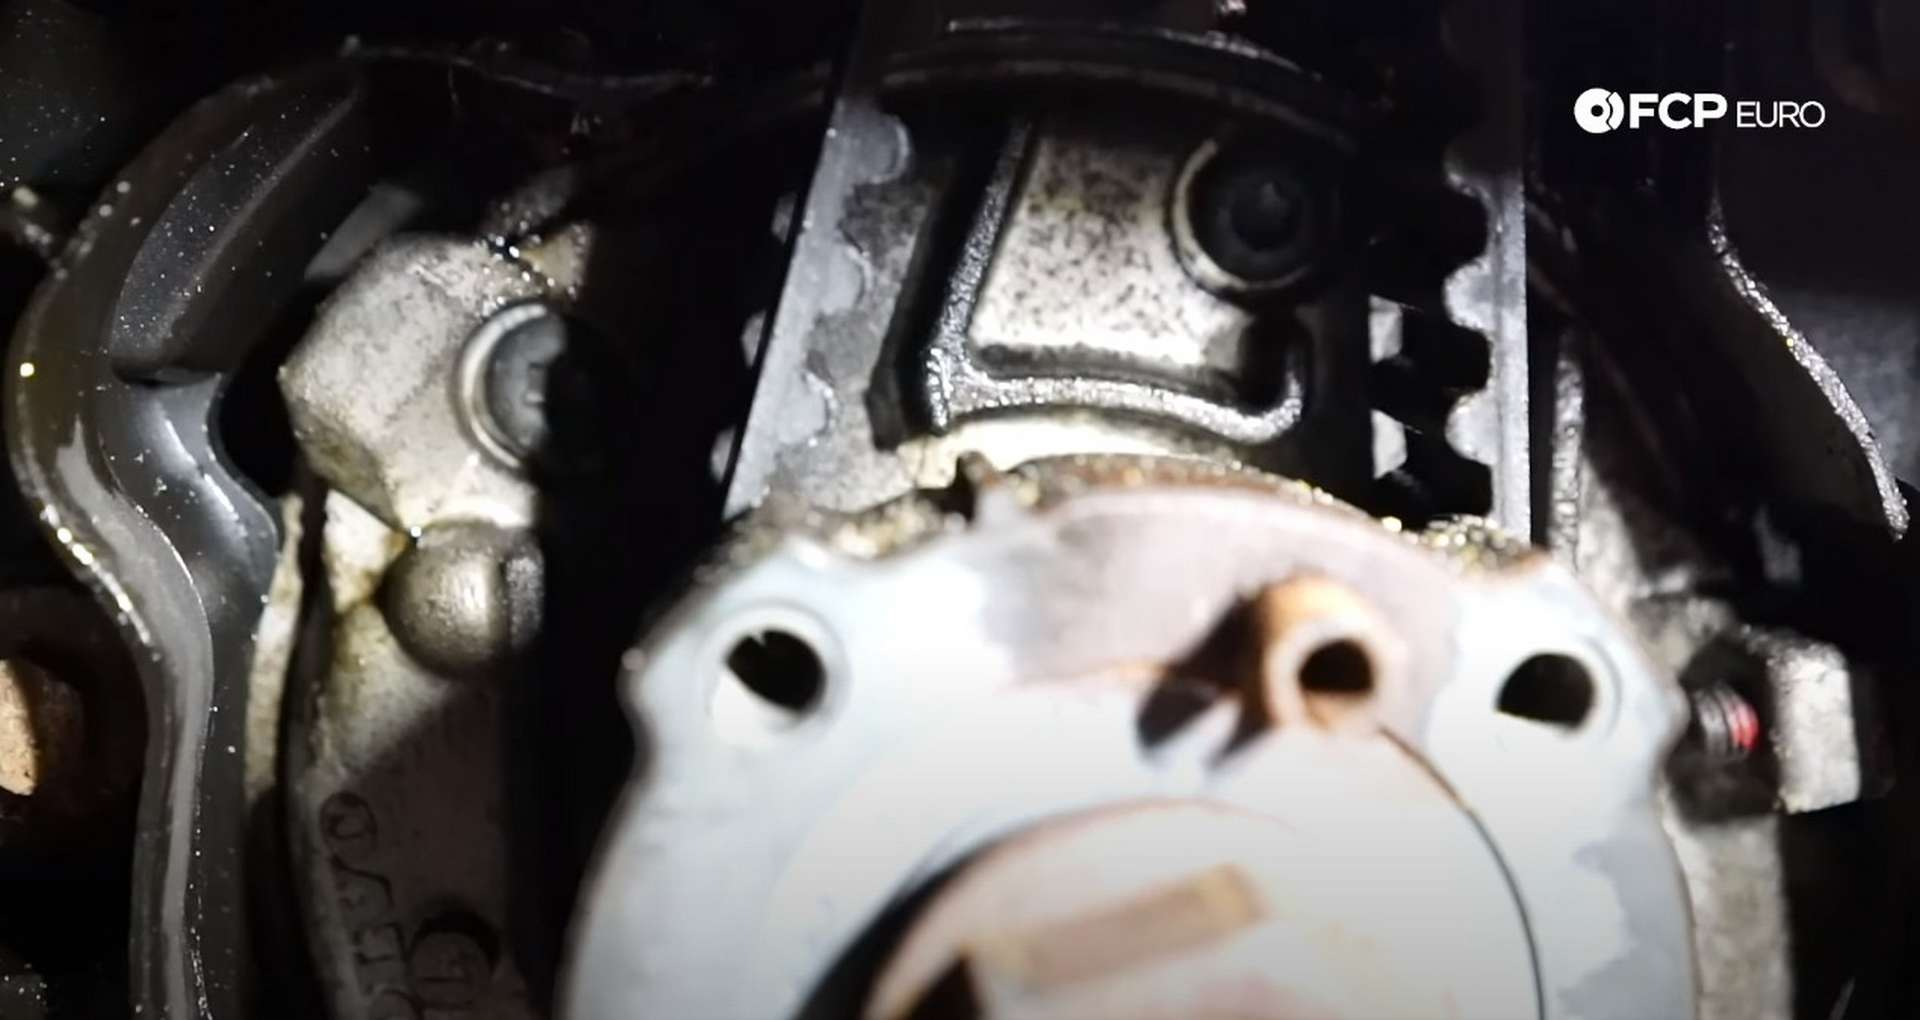 DIY Volvo P1 Water Pump Replacement aligning the timing marks